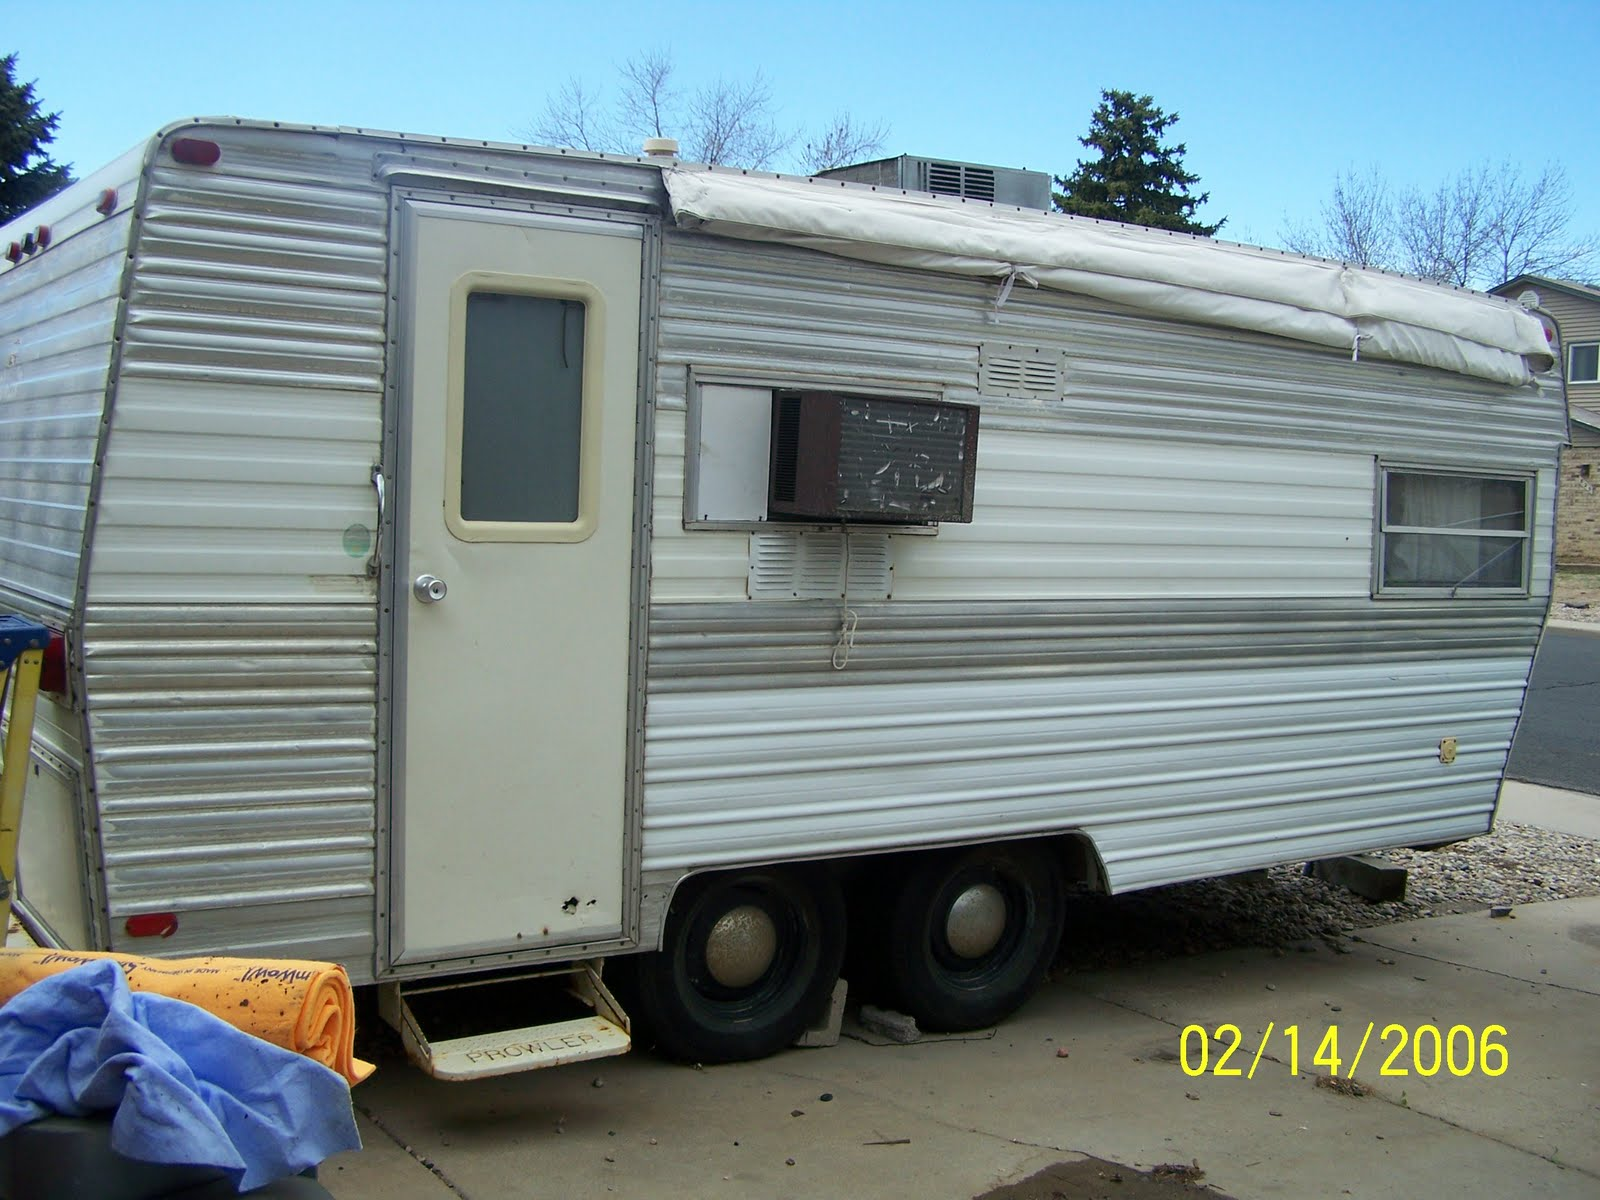 Traveling Trailer For Sale Near Me